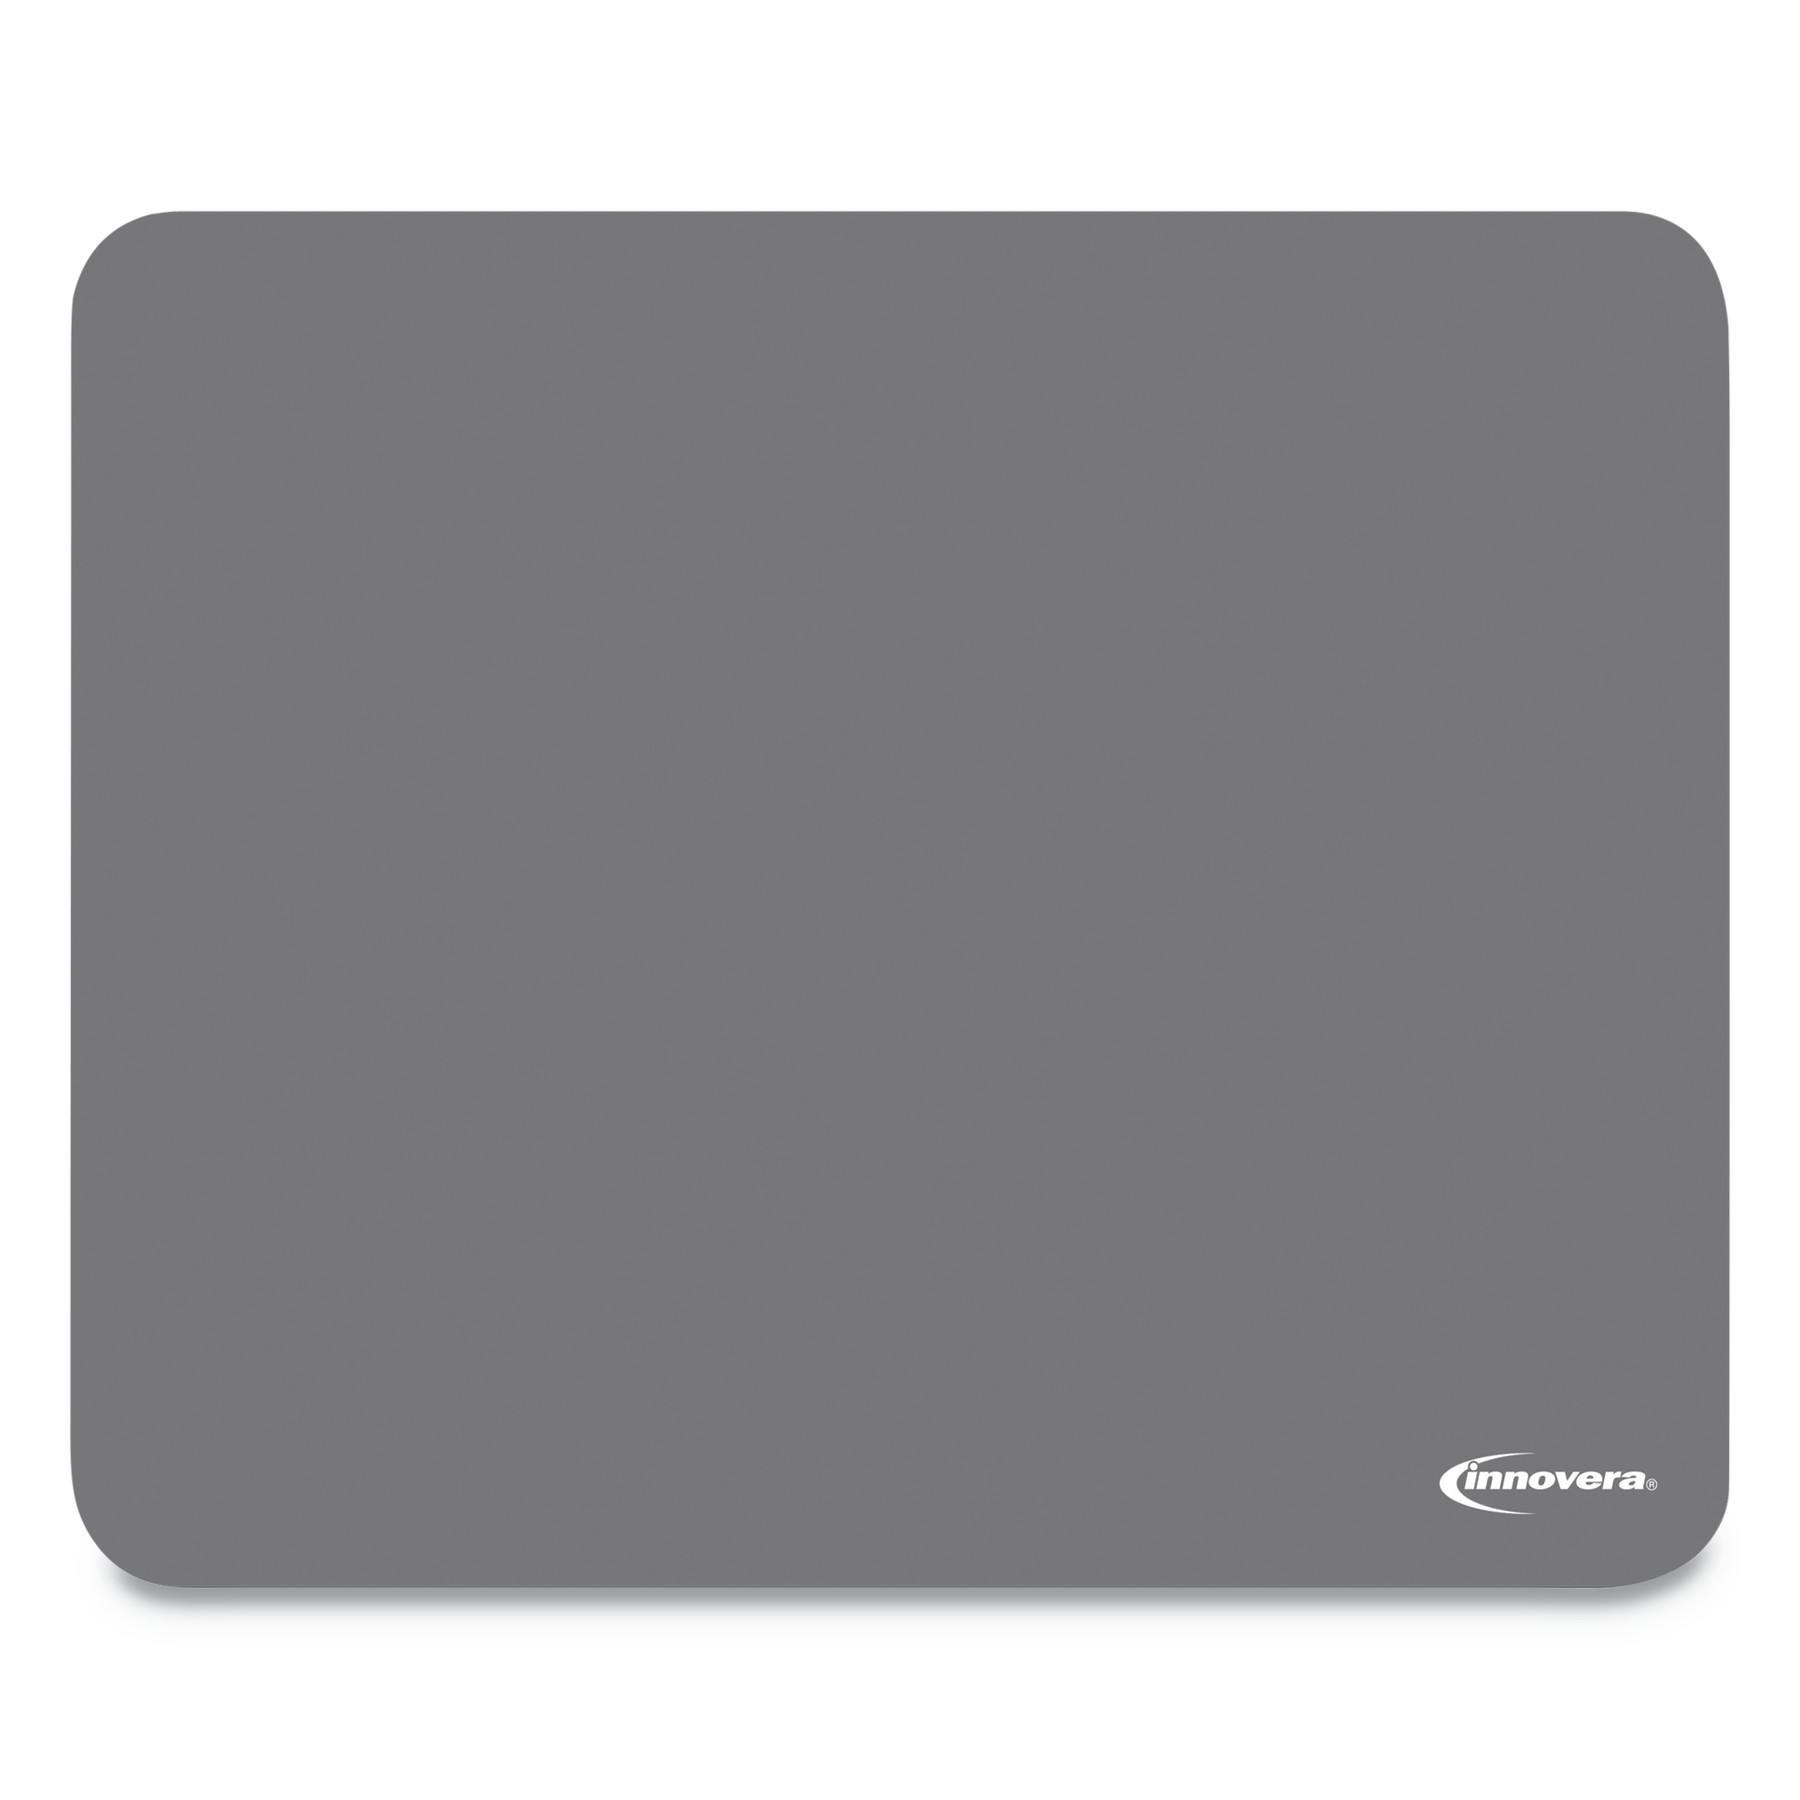 Innovera Latex-Free Synthetic Rubber Mouse Pad, Gray -IVR52449